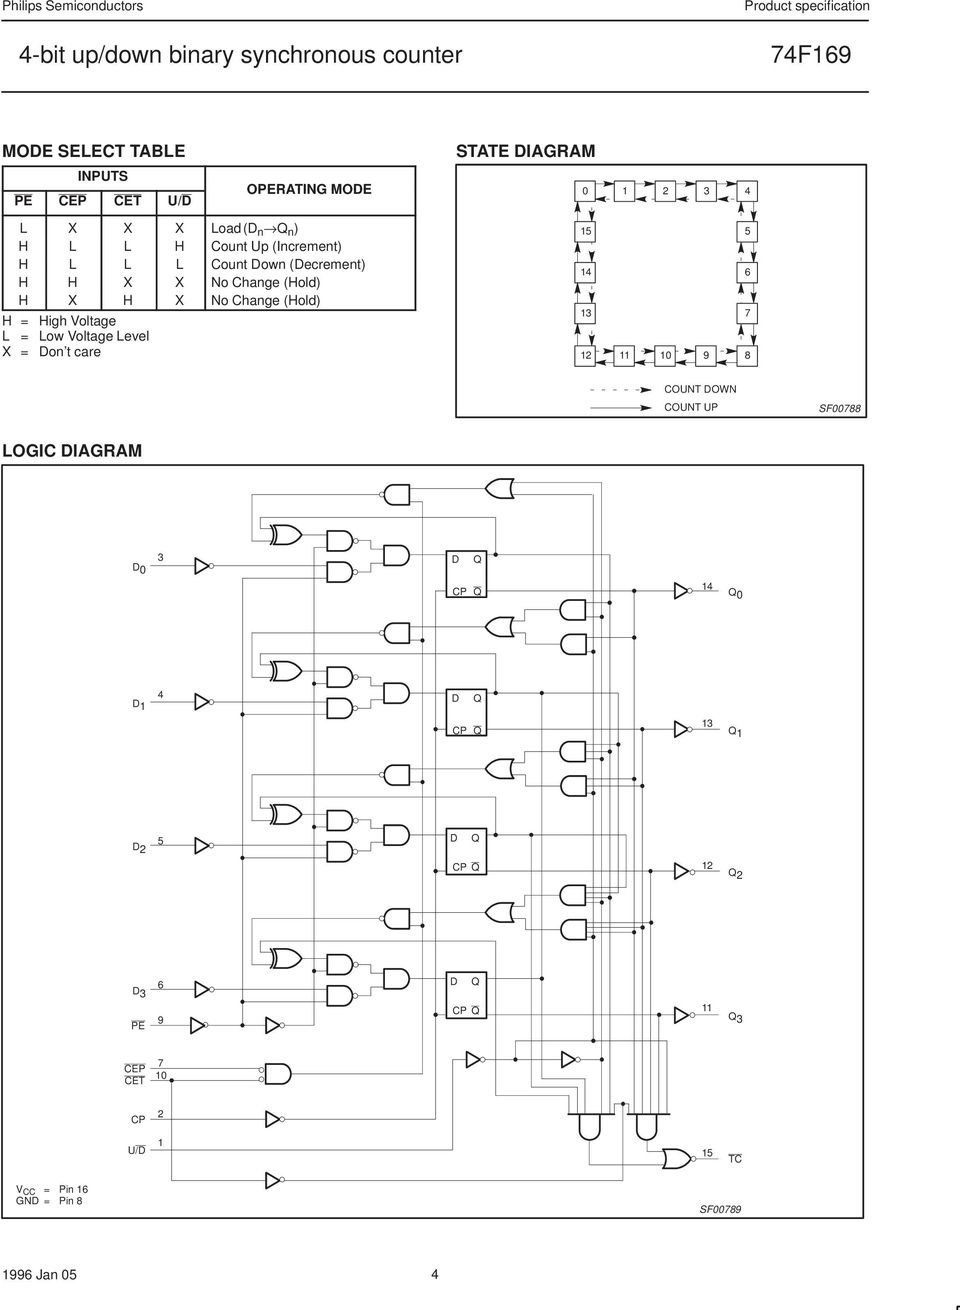 74f168 74f169 4 Bit Up Down Binary Synchronous Counter Pdf Circuit Carry Look Ahead Adder Lcd Display L Low Voltage Level X Don T Care 15 14 13 12 11 1